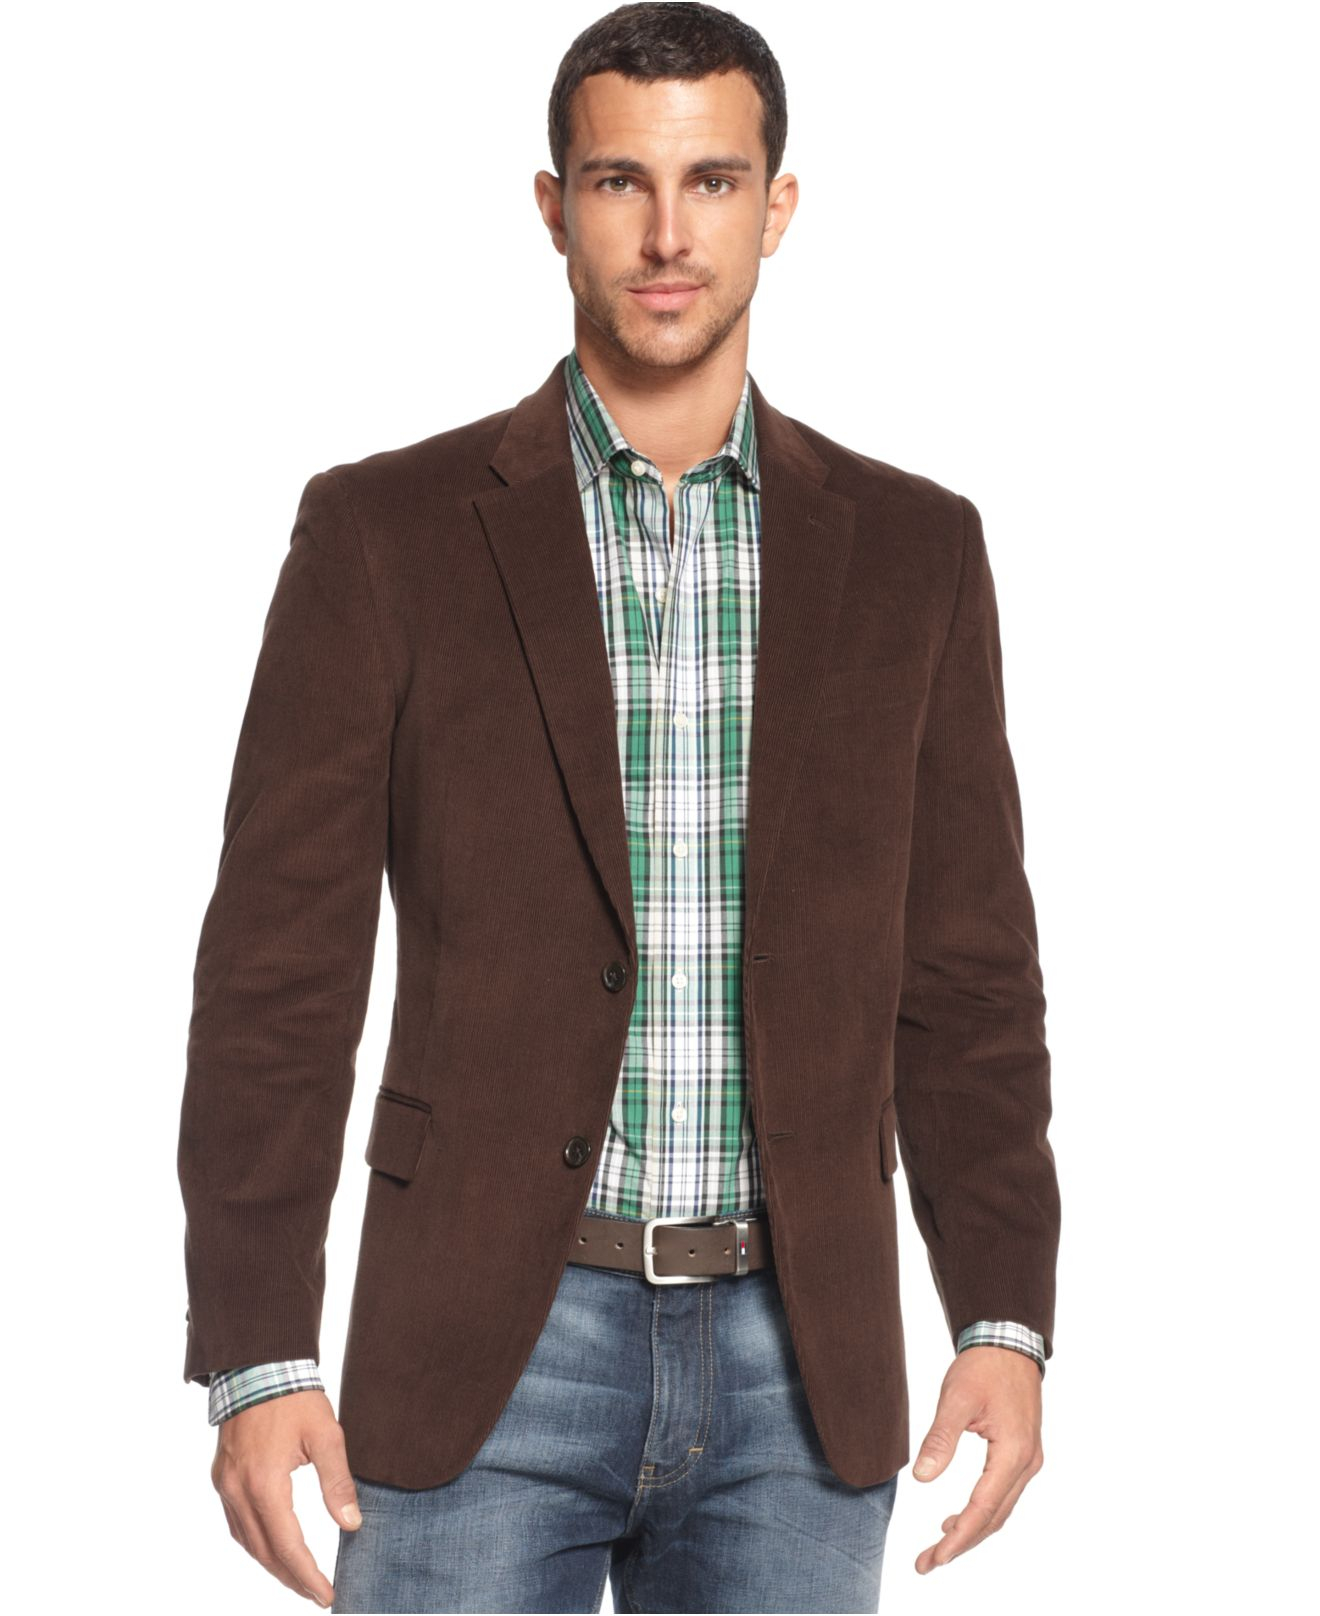 Tommy hilfiger Solid Trim-fit Corduroy Sport Coat With Elbow